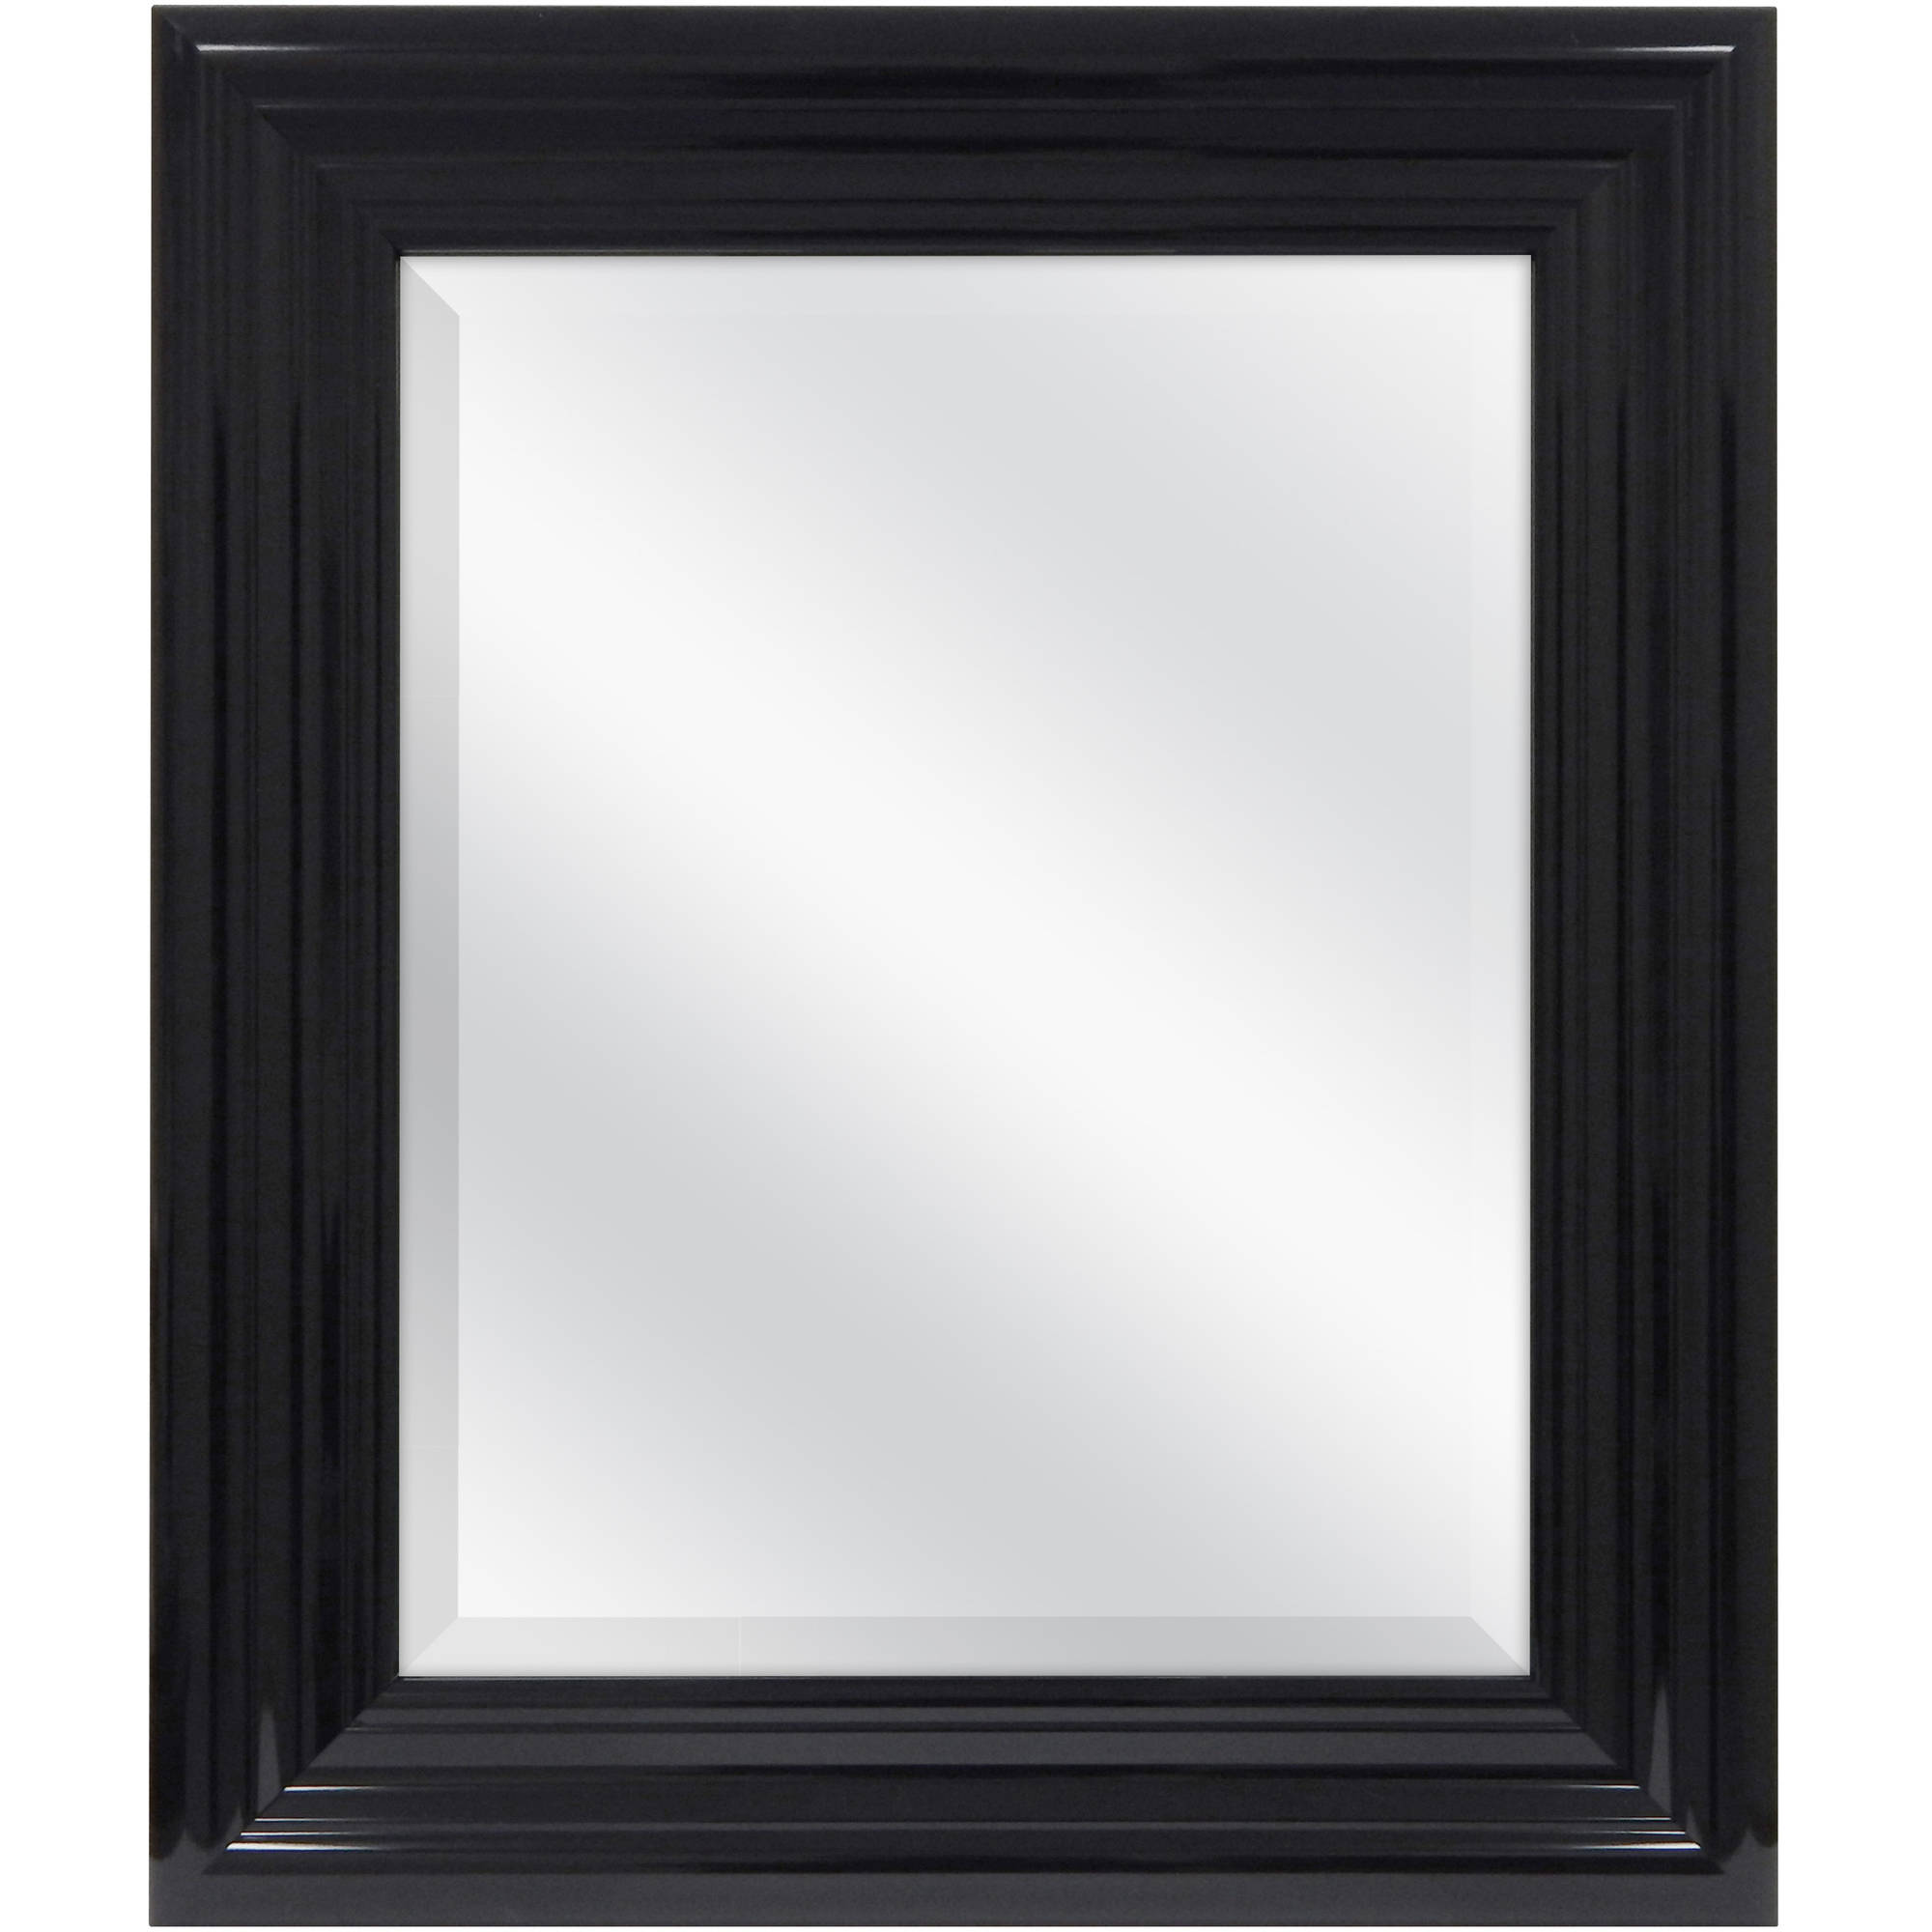 "Better Homes and Gardens 23""x27"" Black Beveled Wall Mirror"